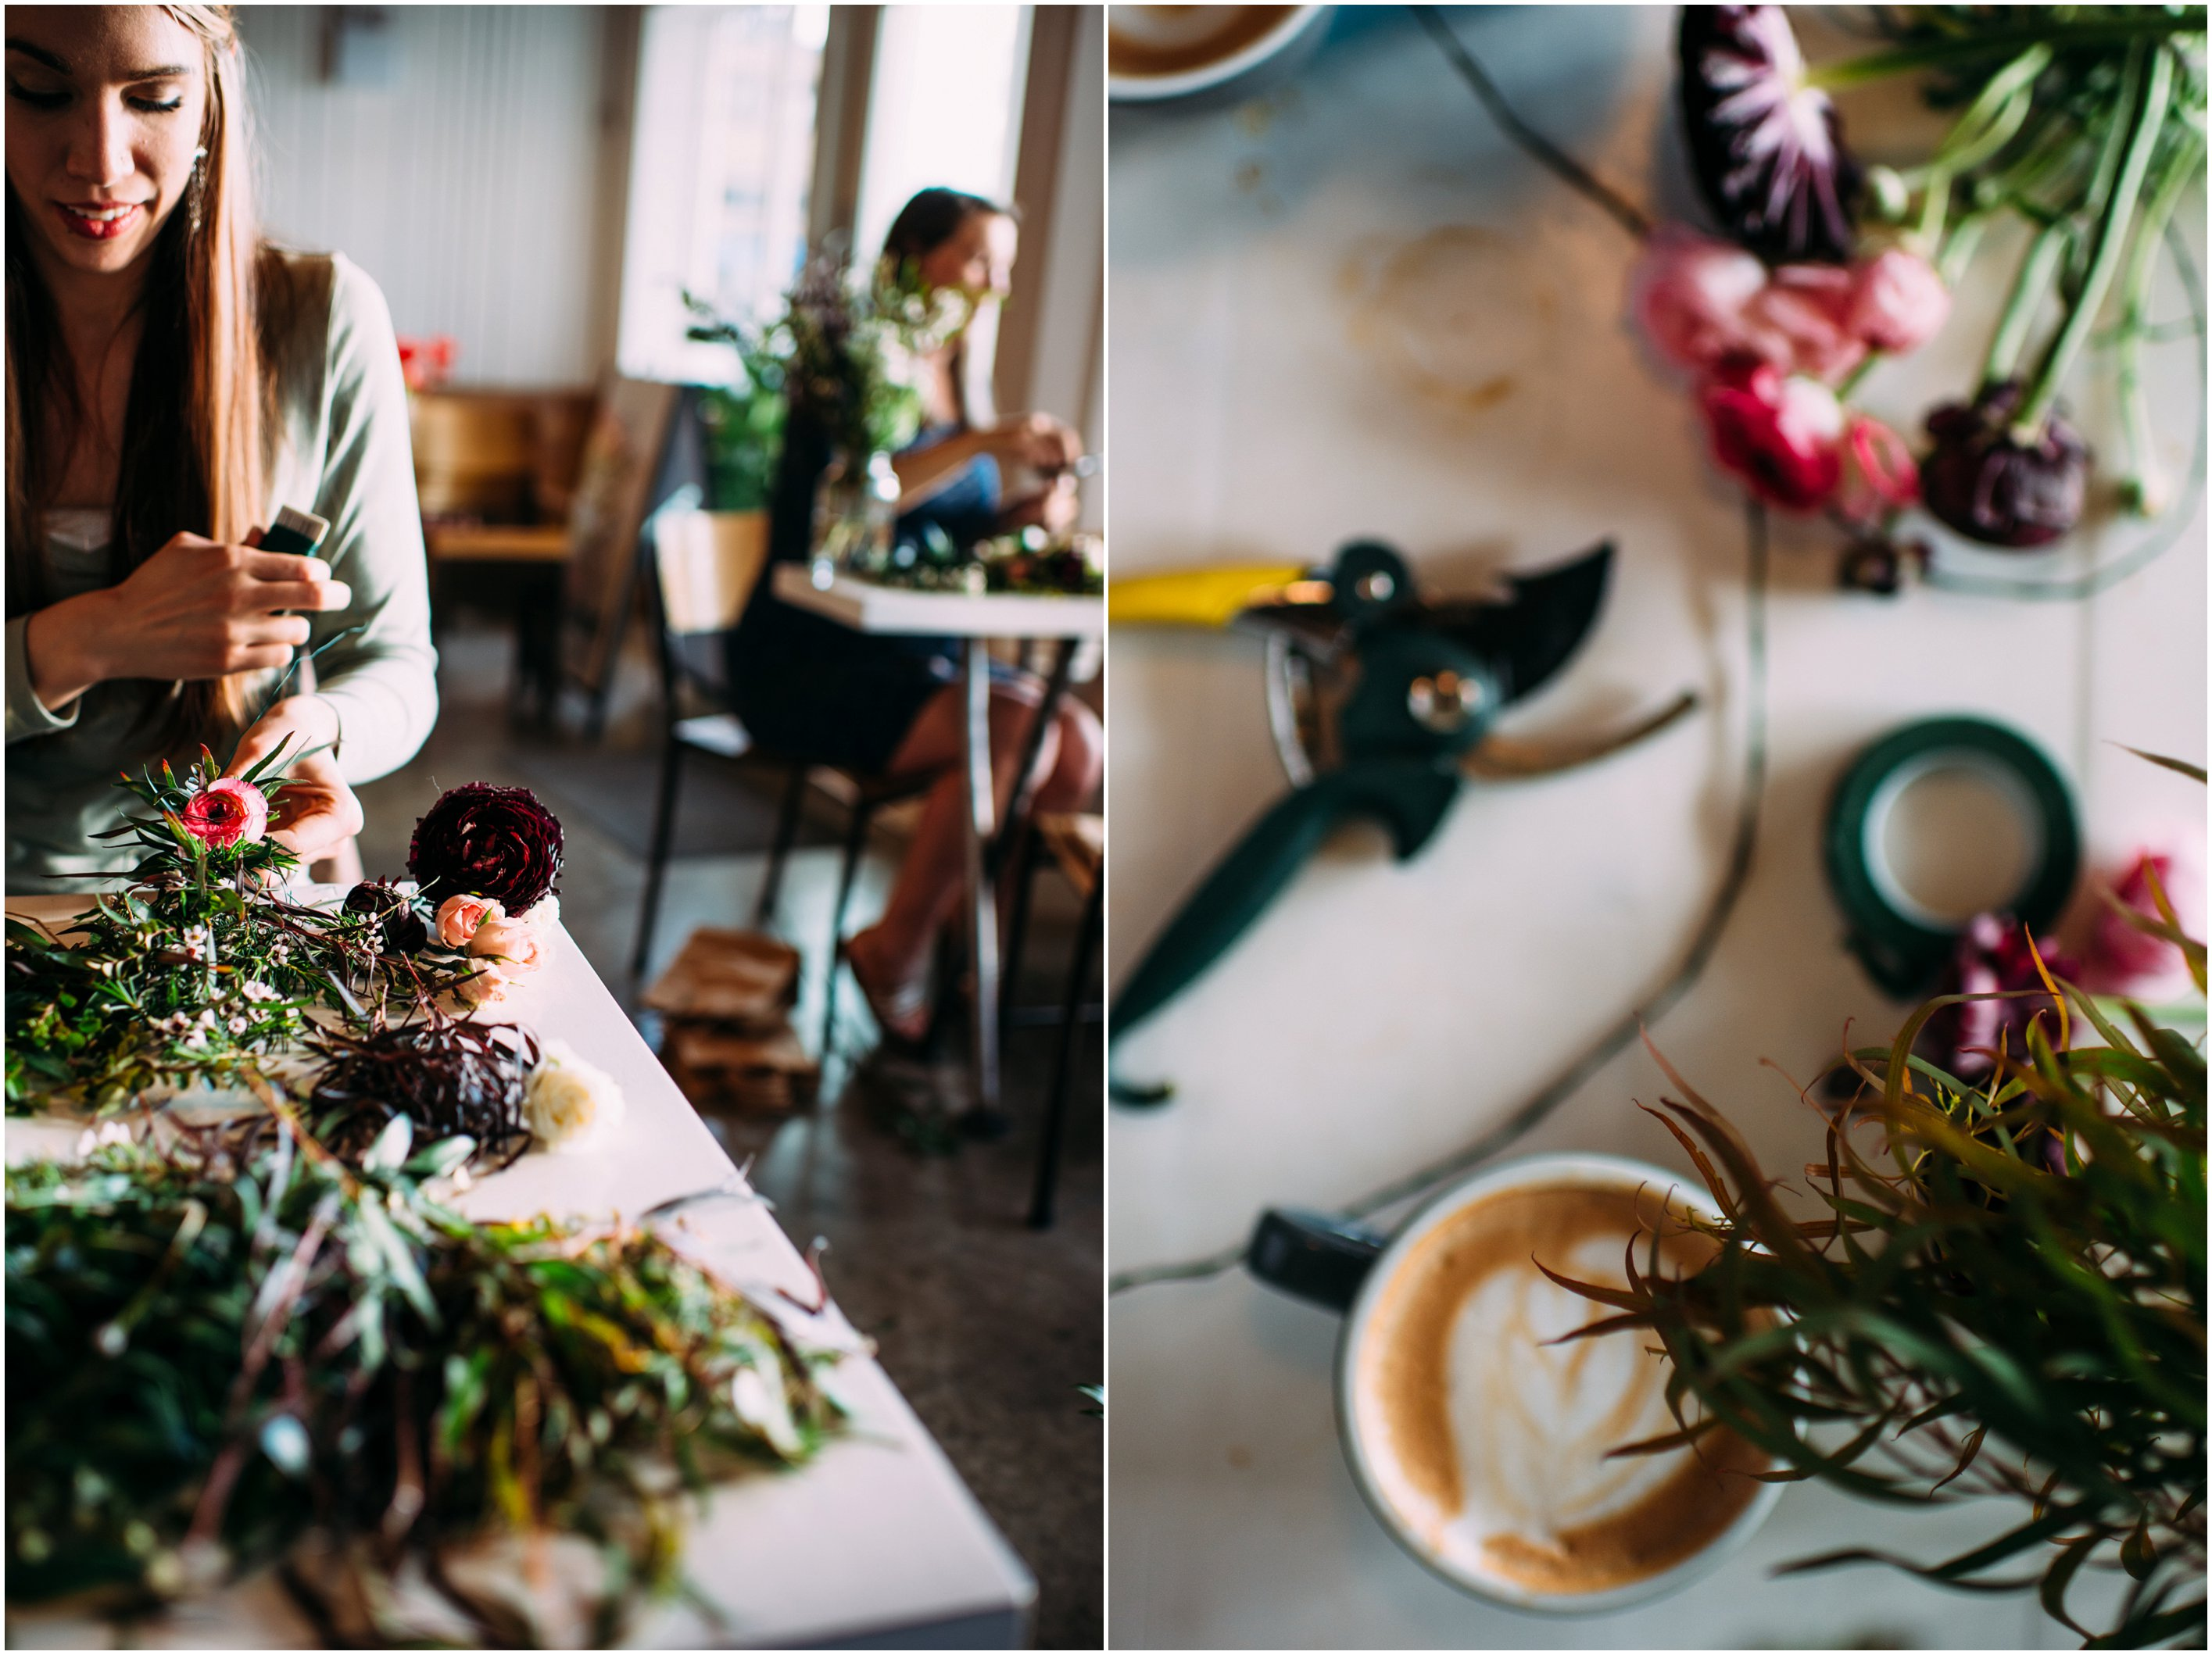 flower crown workshop at confetti floral